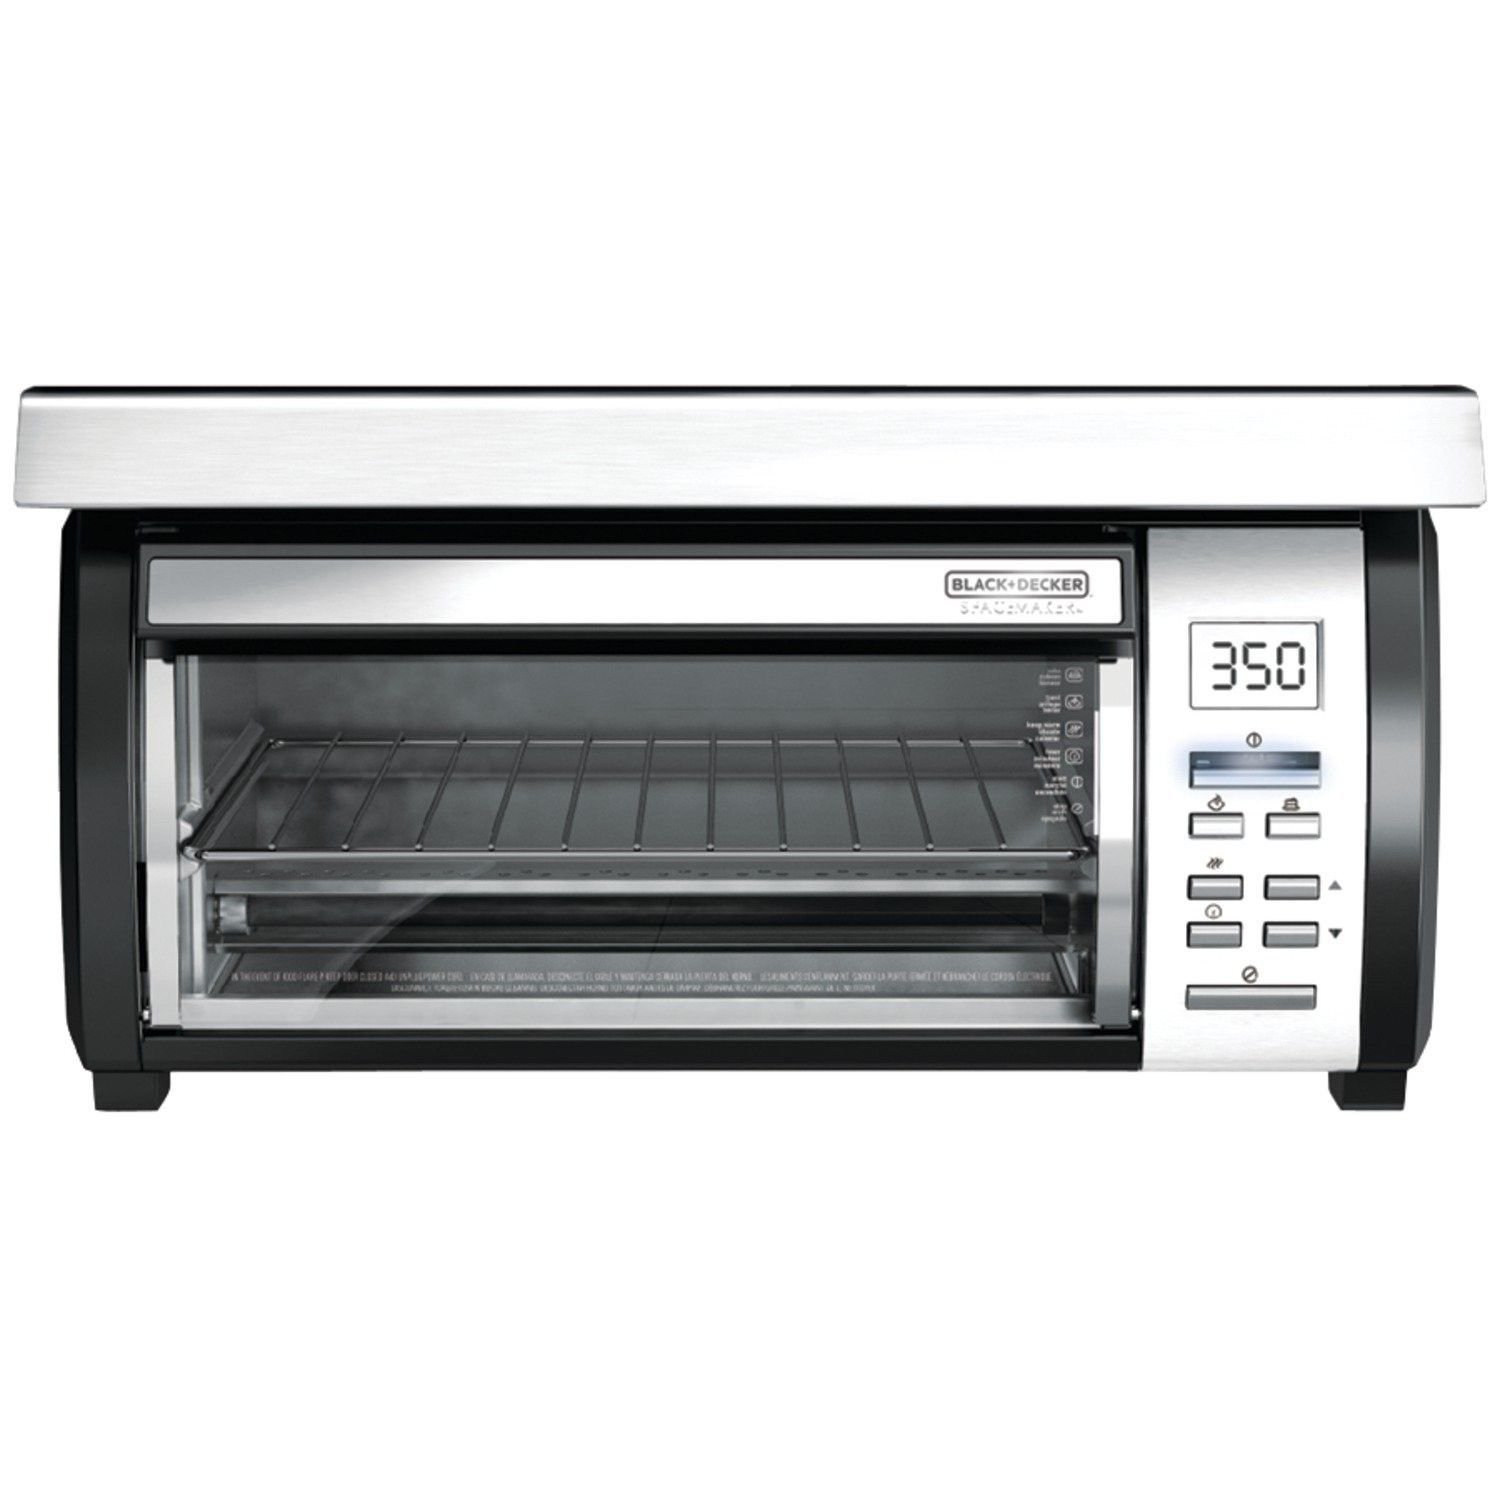 (Ship from USA) BLACK+DECKER TROS1000D Space Maker Digital Toaster Oven Stainless Steel/Black /ITEM NO#8Y-IFW81854291068